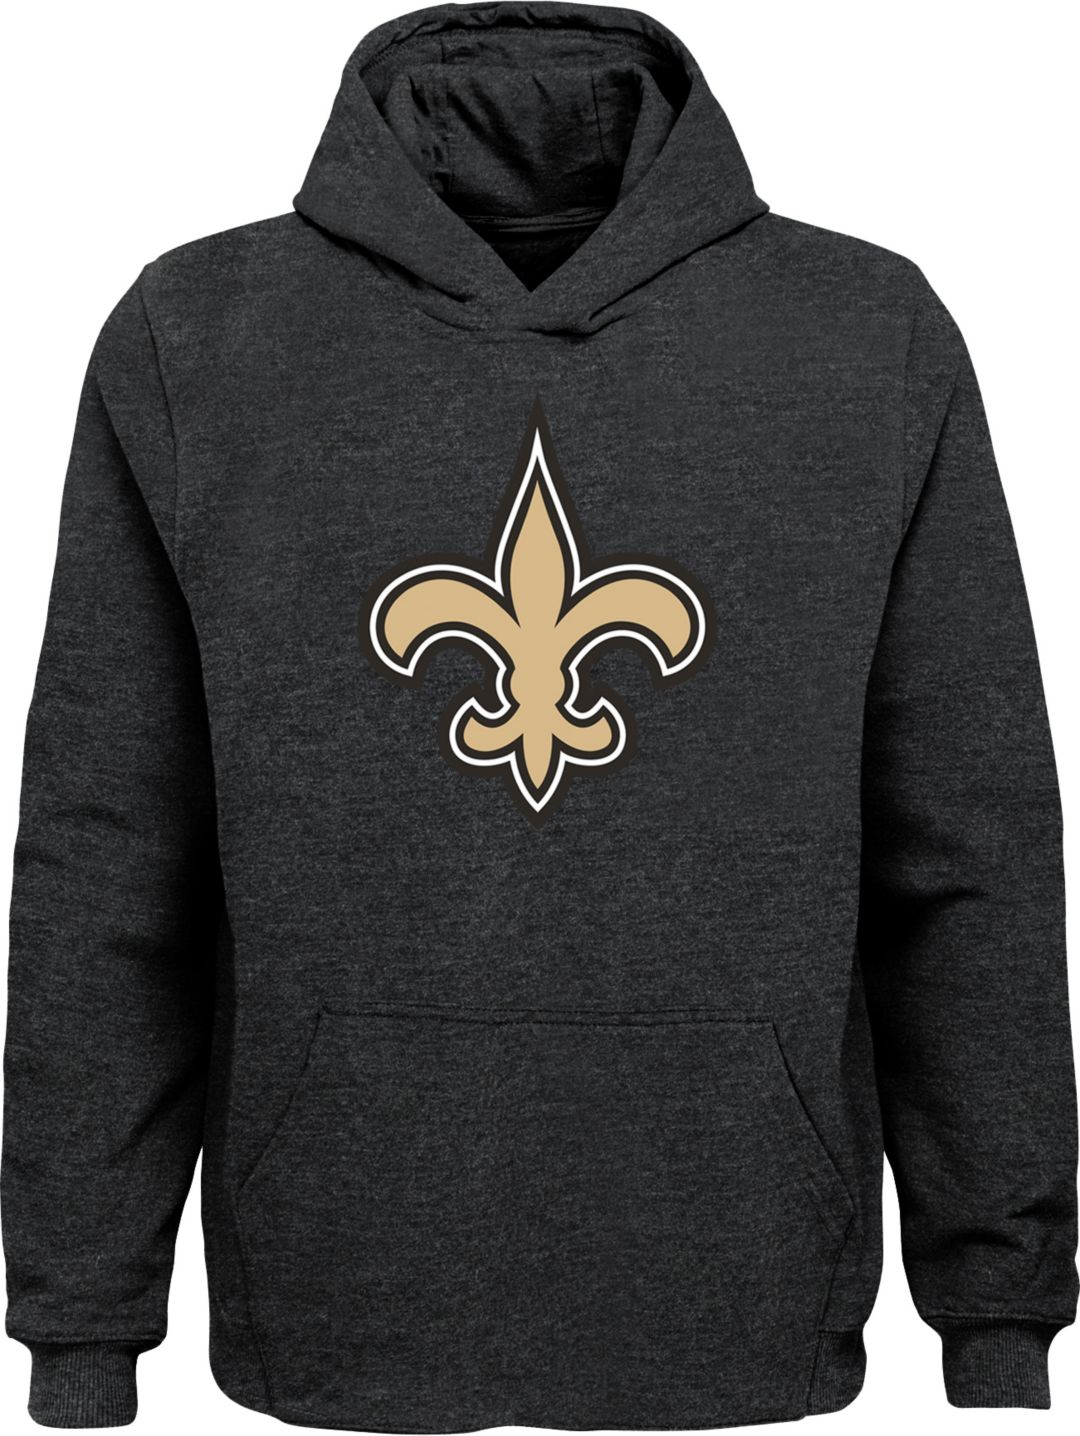 best service 29012 f2ff9 NFL Team Apparel Youth New Orleans Saints Logo Black Hoodie